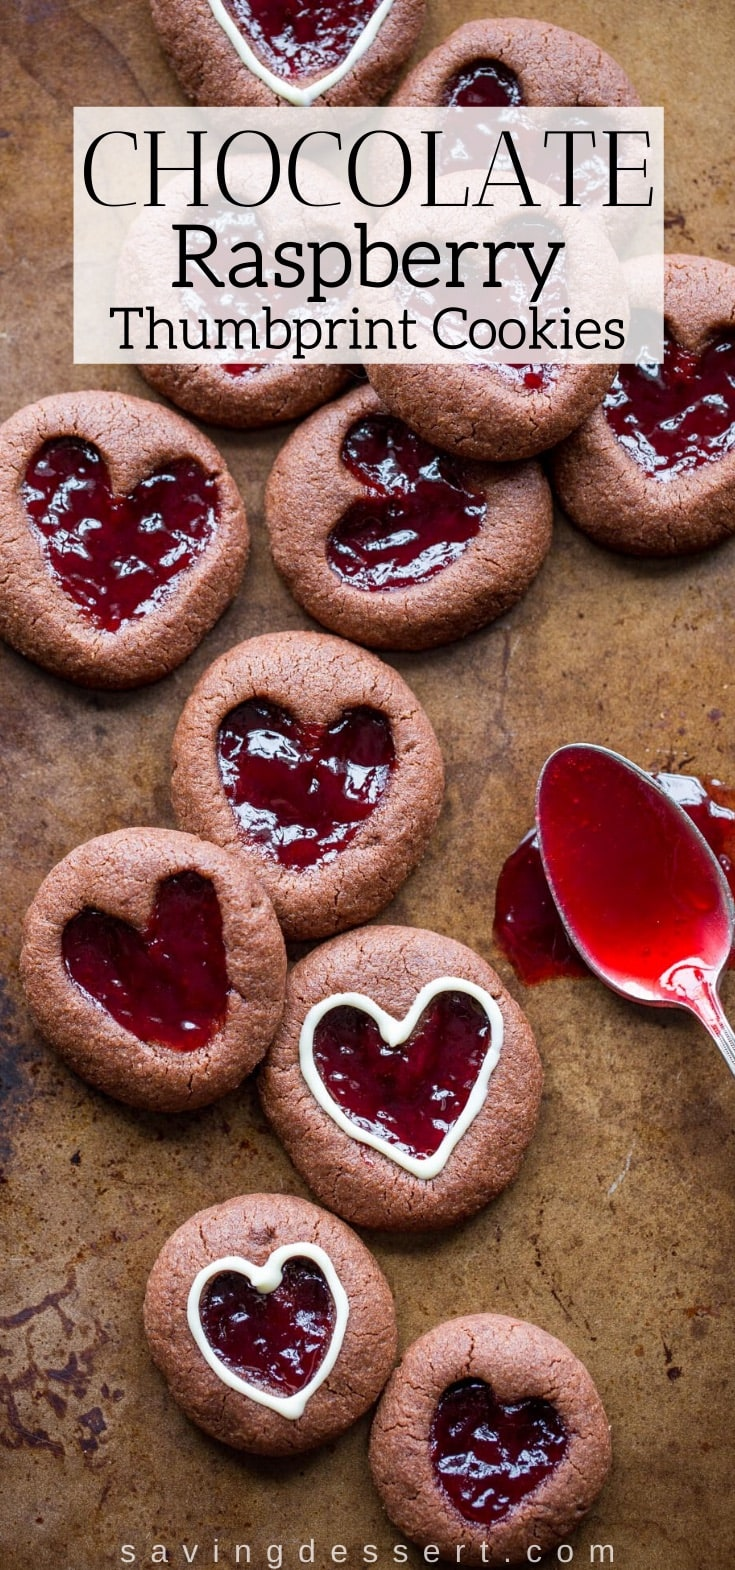 a tray with chocolate raspberry thumbprint cookies